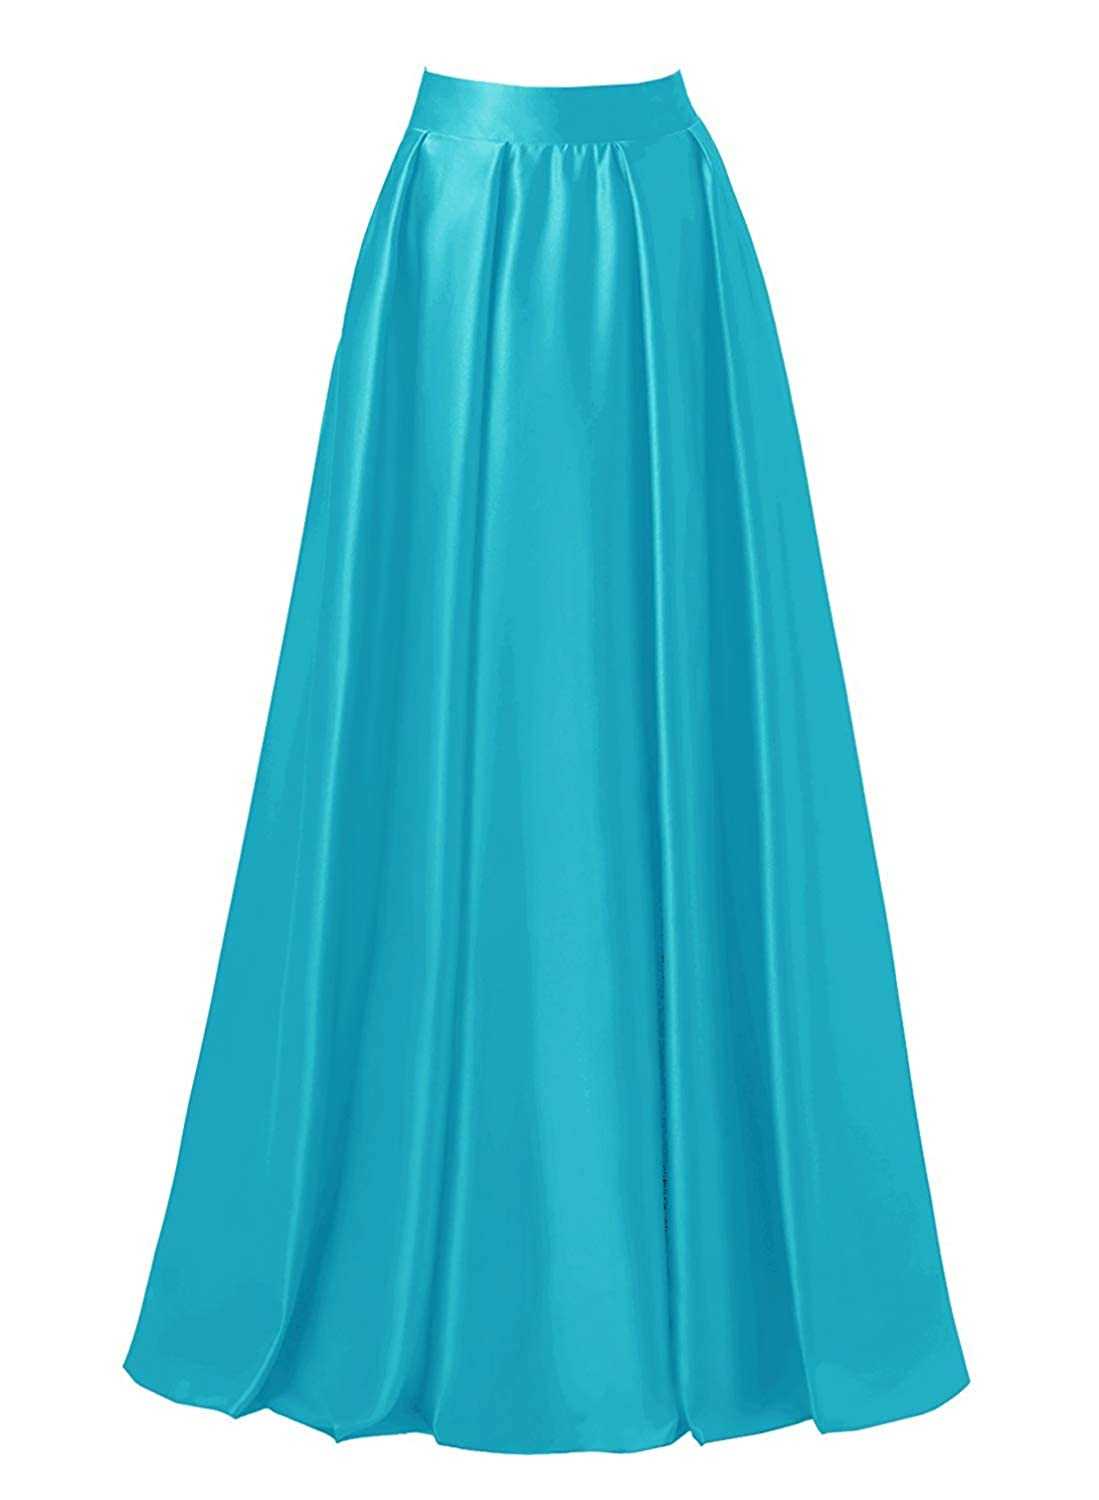 bluee DreamSkirts Women's Satin Flared Swing Maxi Skirt Long Floor Length High Waist Fomal Prom Party Skirts with Pockets